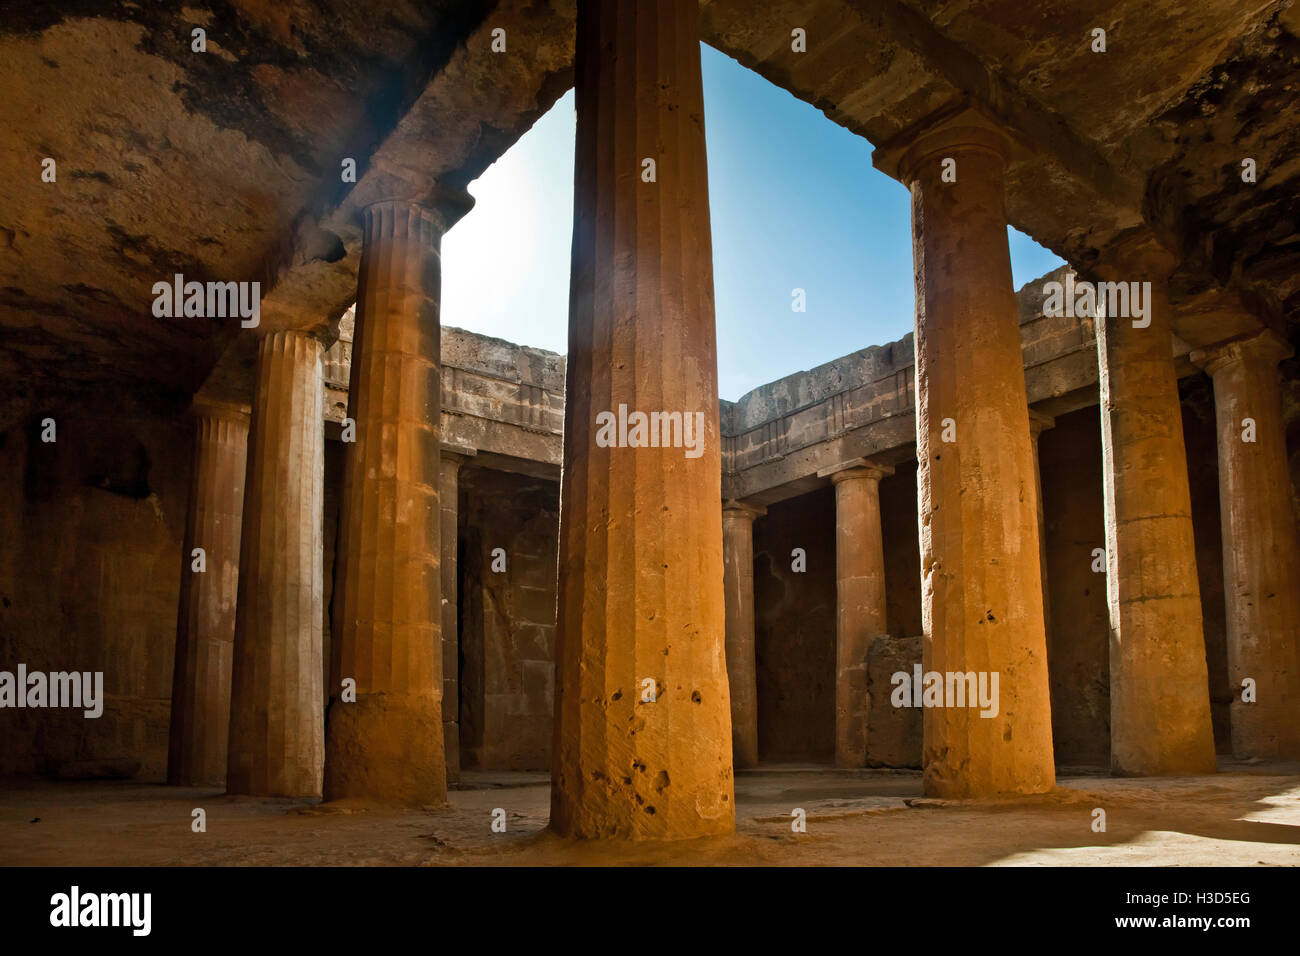 The Tombs of the Kings in Paphos, Cyprus - Stock Image